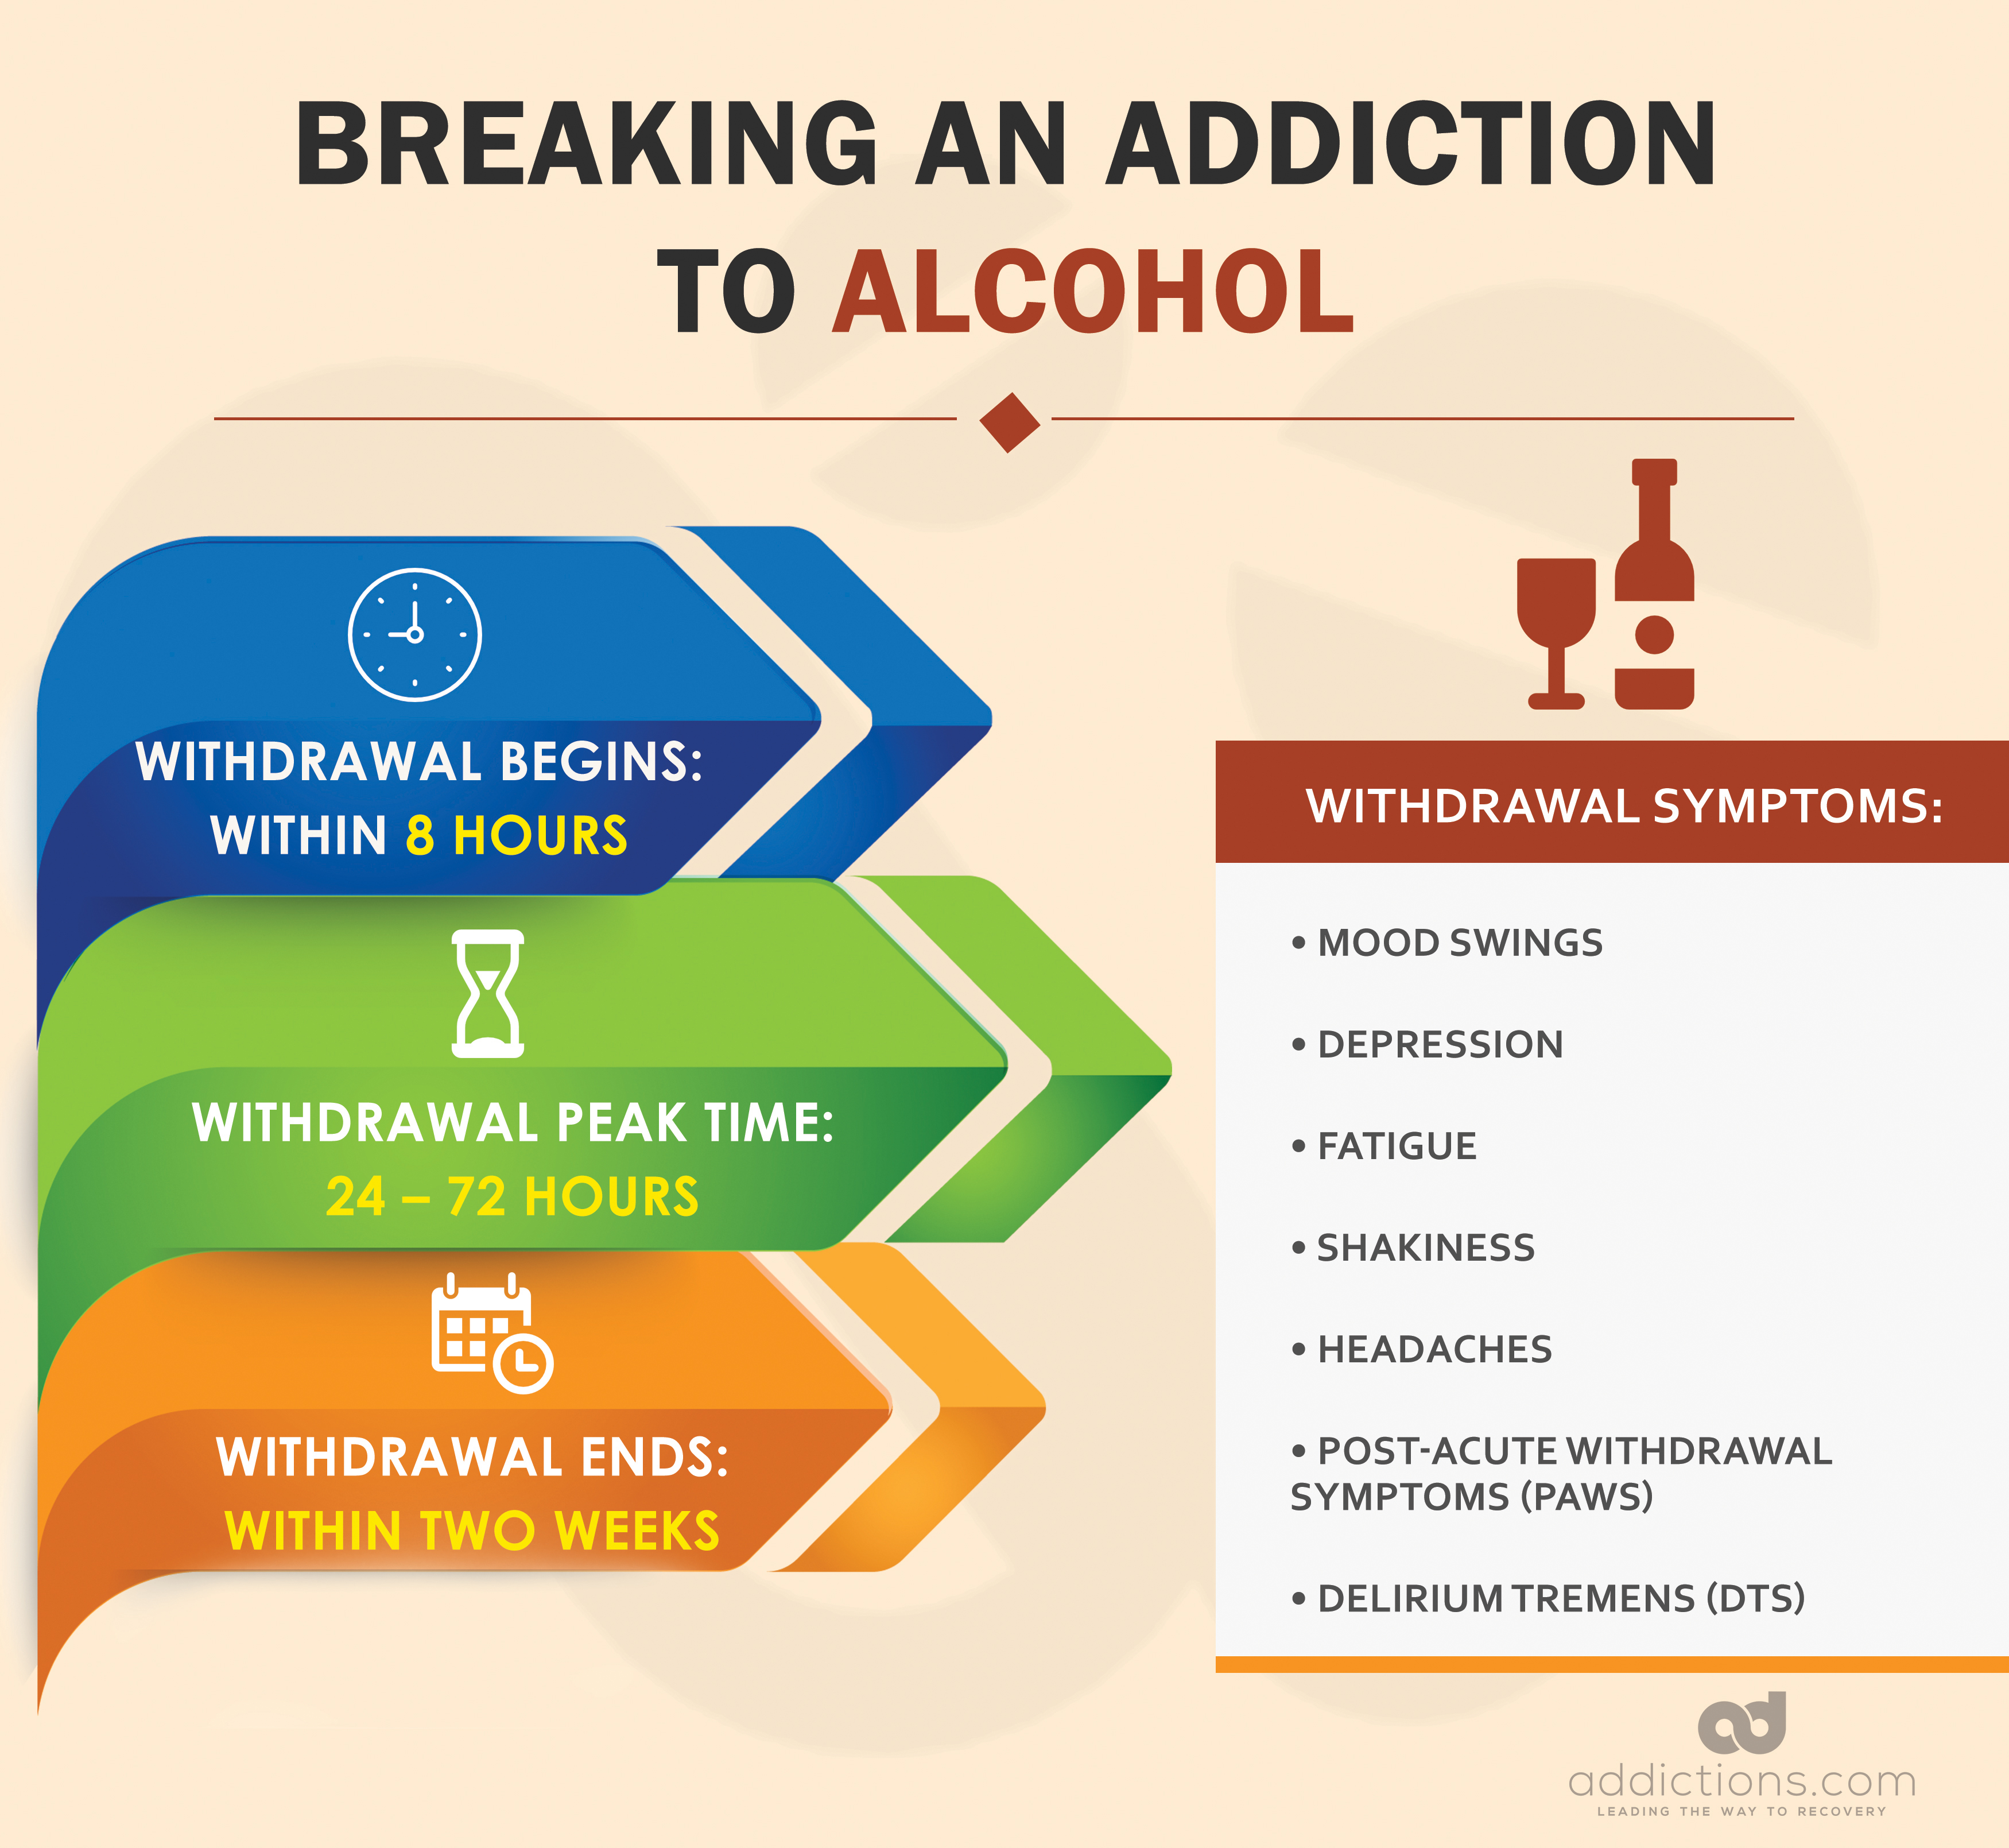 How Long Does It Take to Withdraw From Alcohol or Drug Dependence